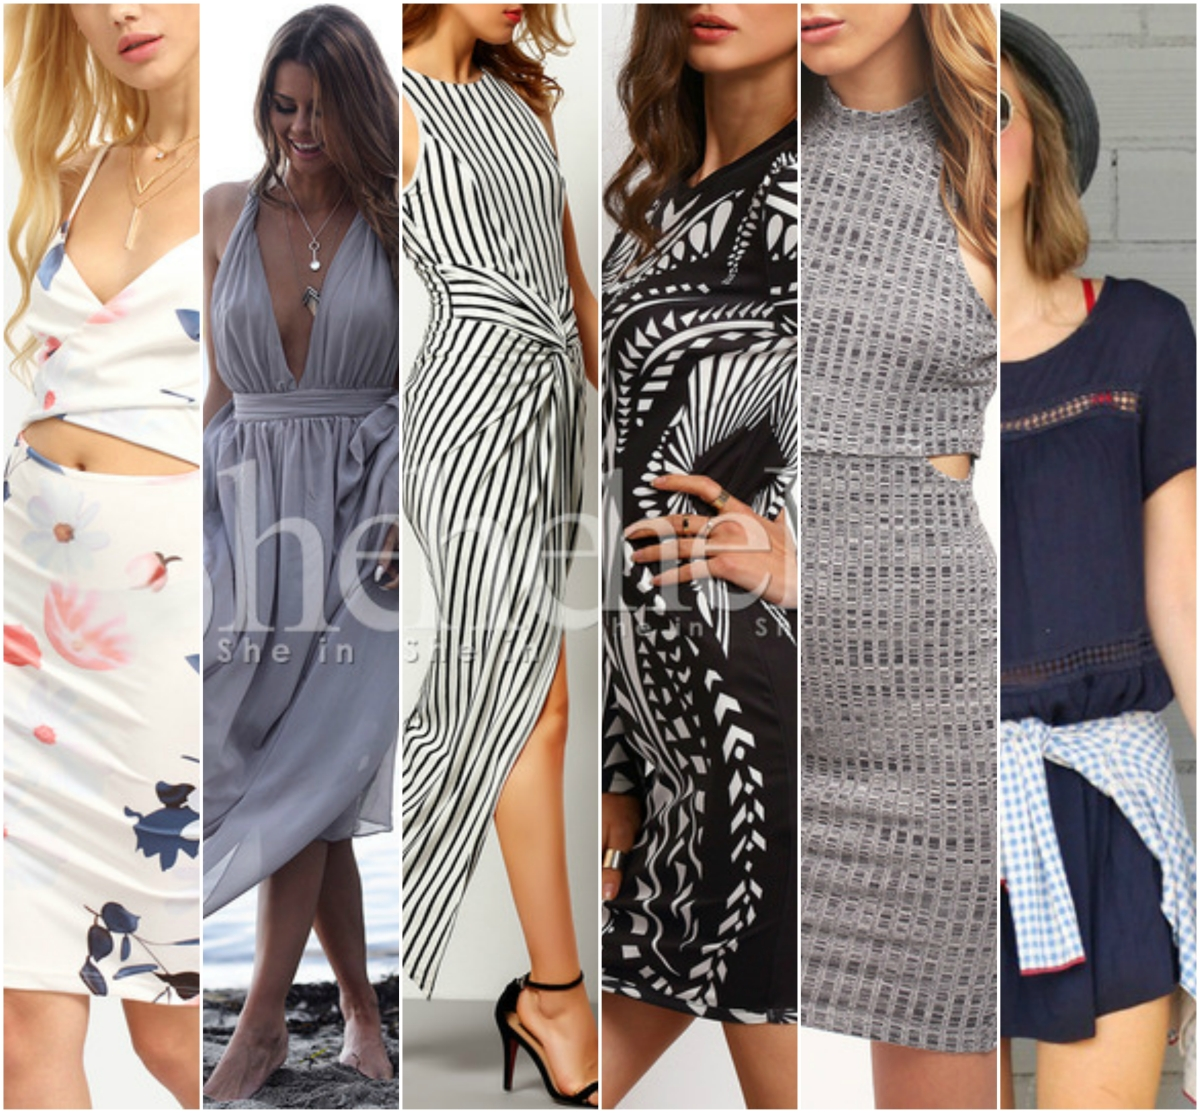 The 6 Dresses You Need From SheIn.com This Summer!!